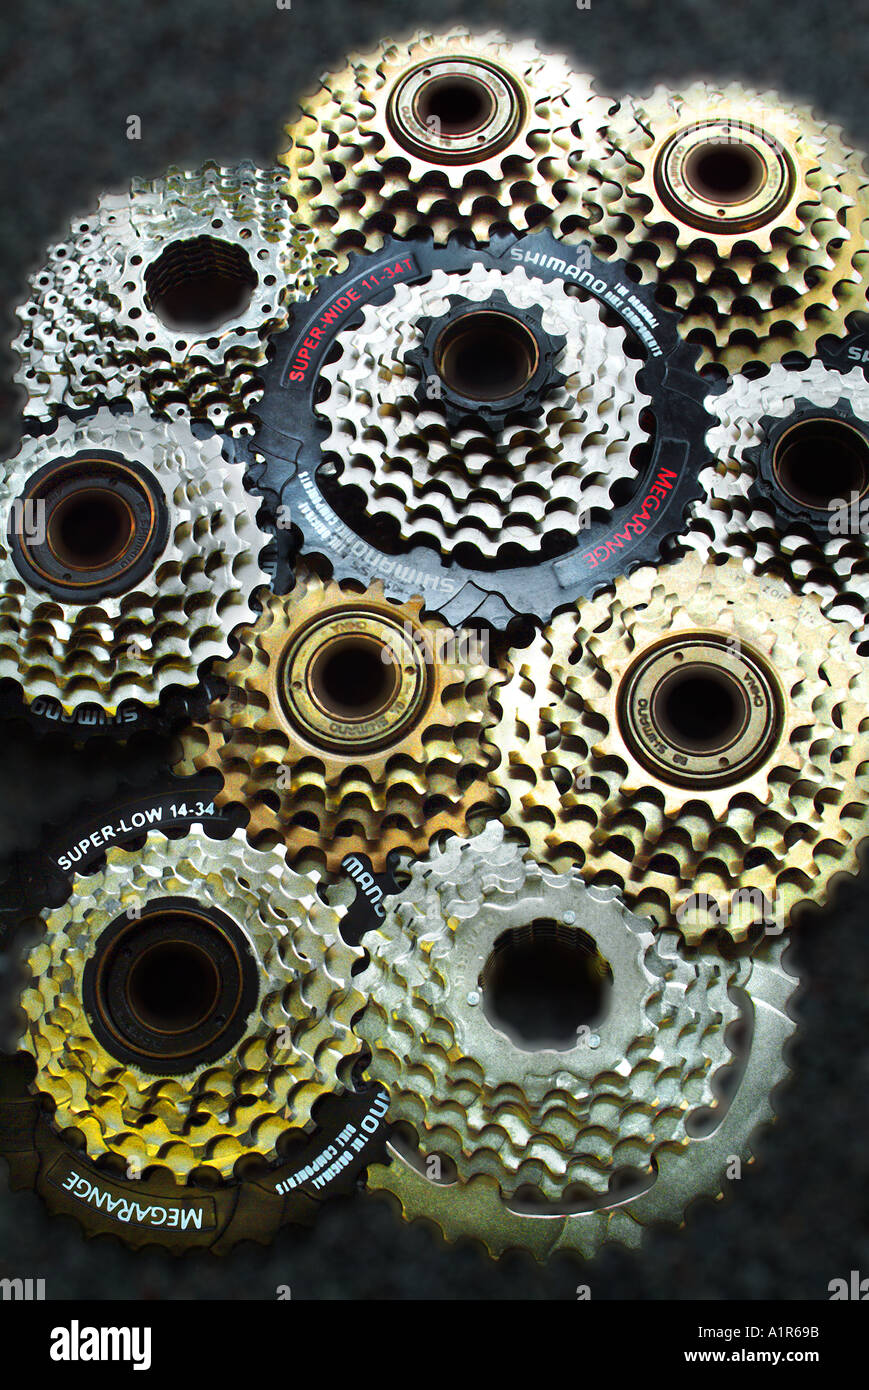 Bicycle Gears - Stock Image